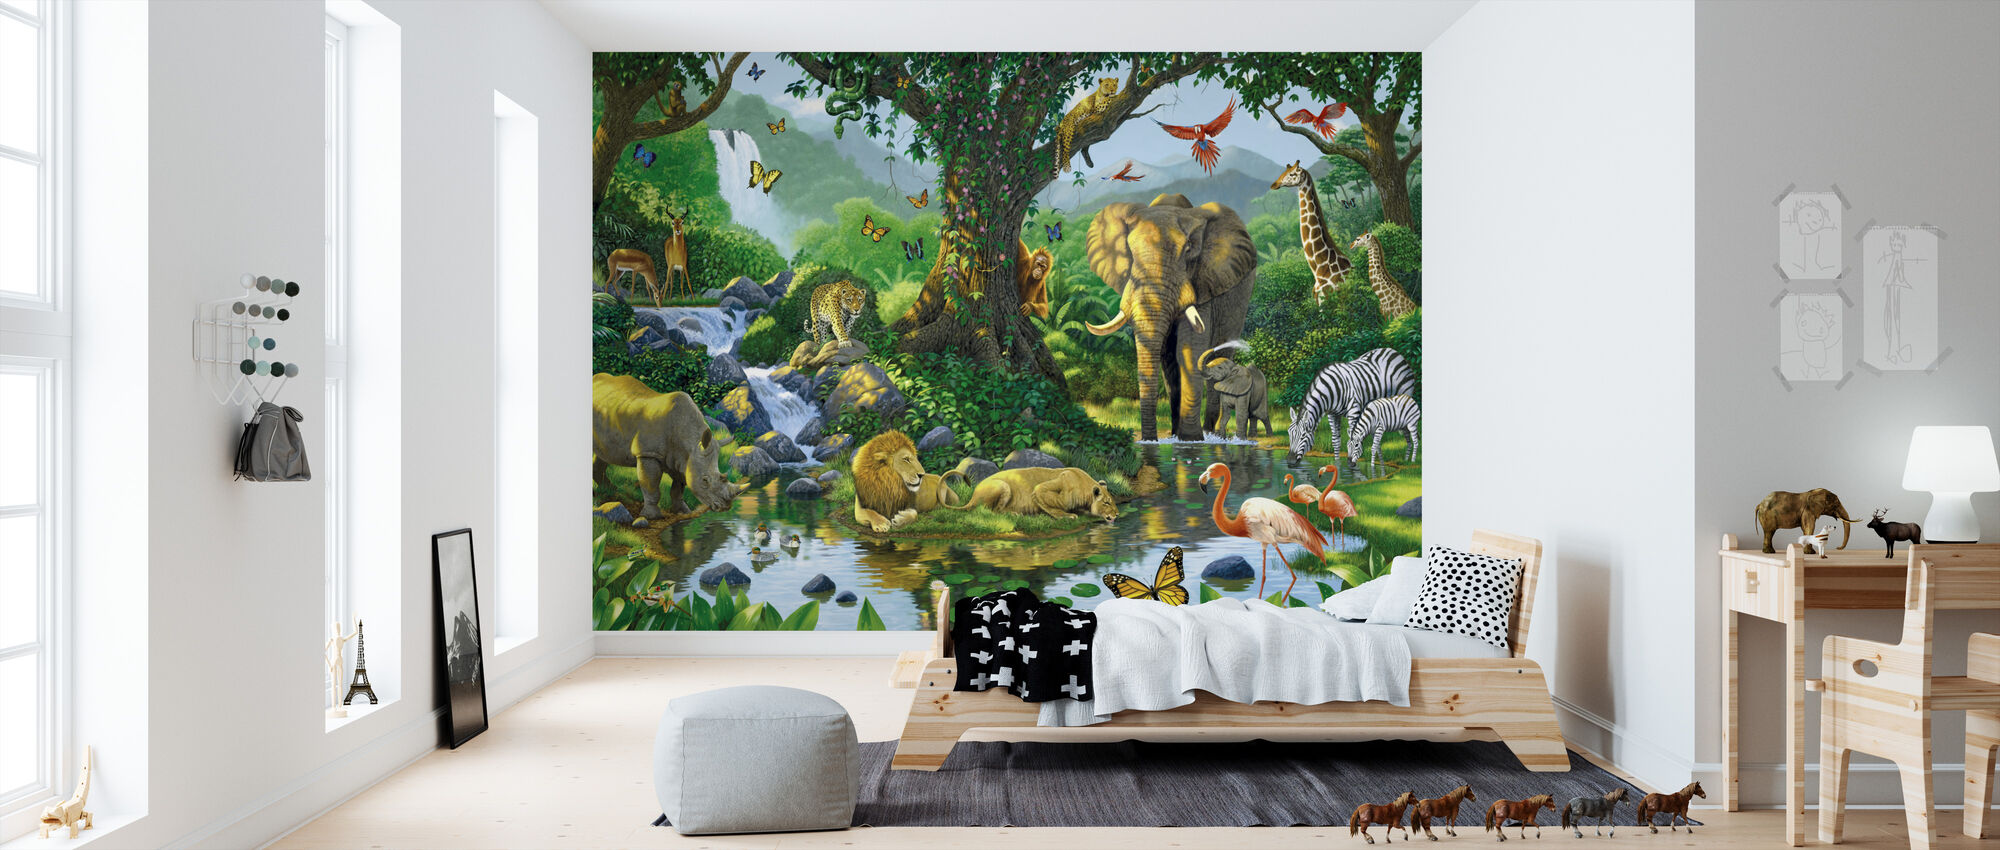 Jungle Harmony - Wallpaper - Kids Room